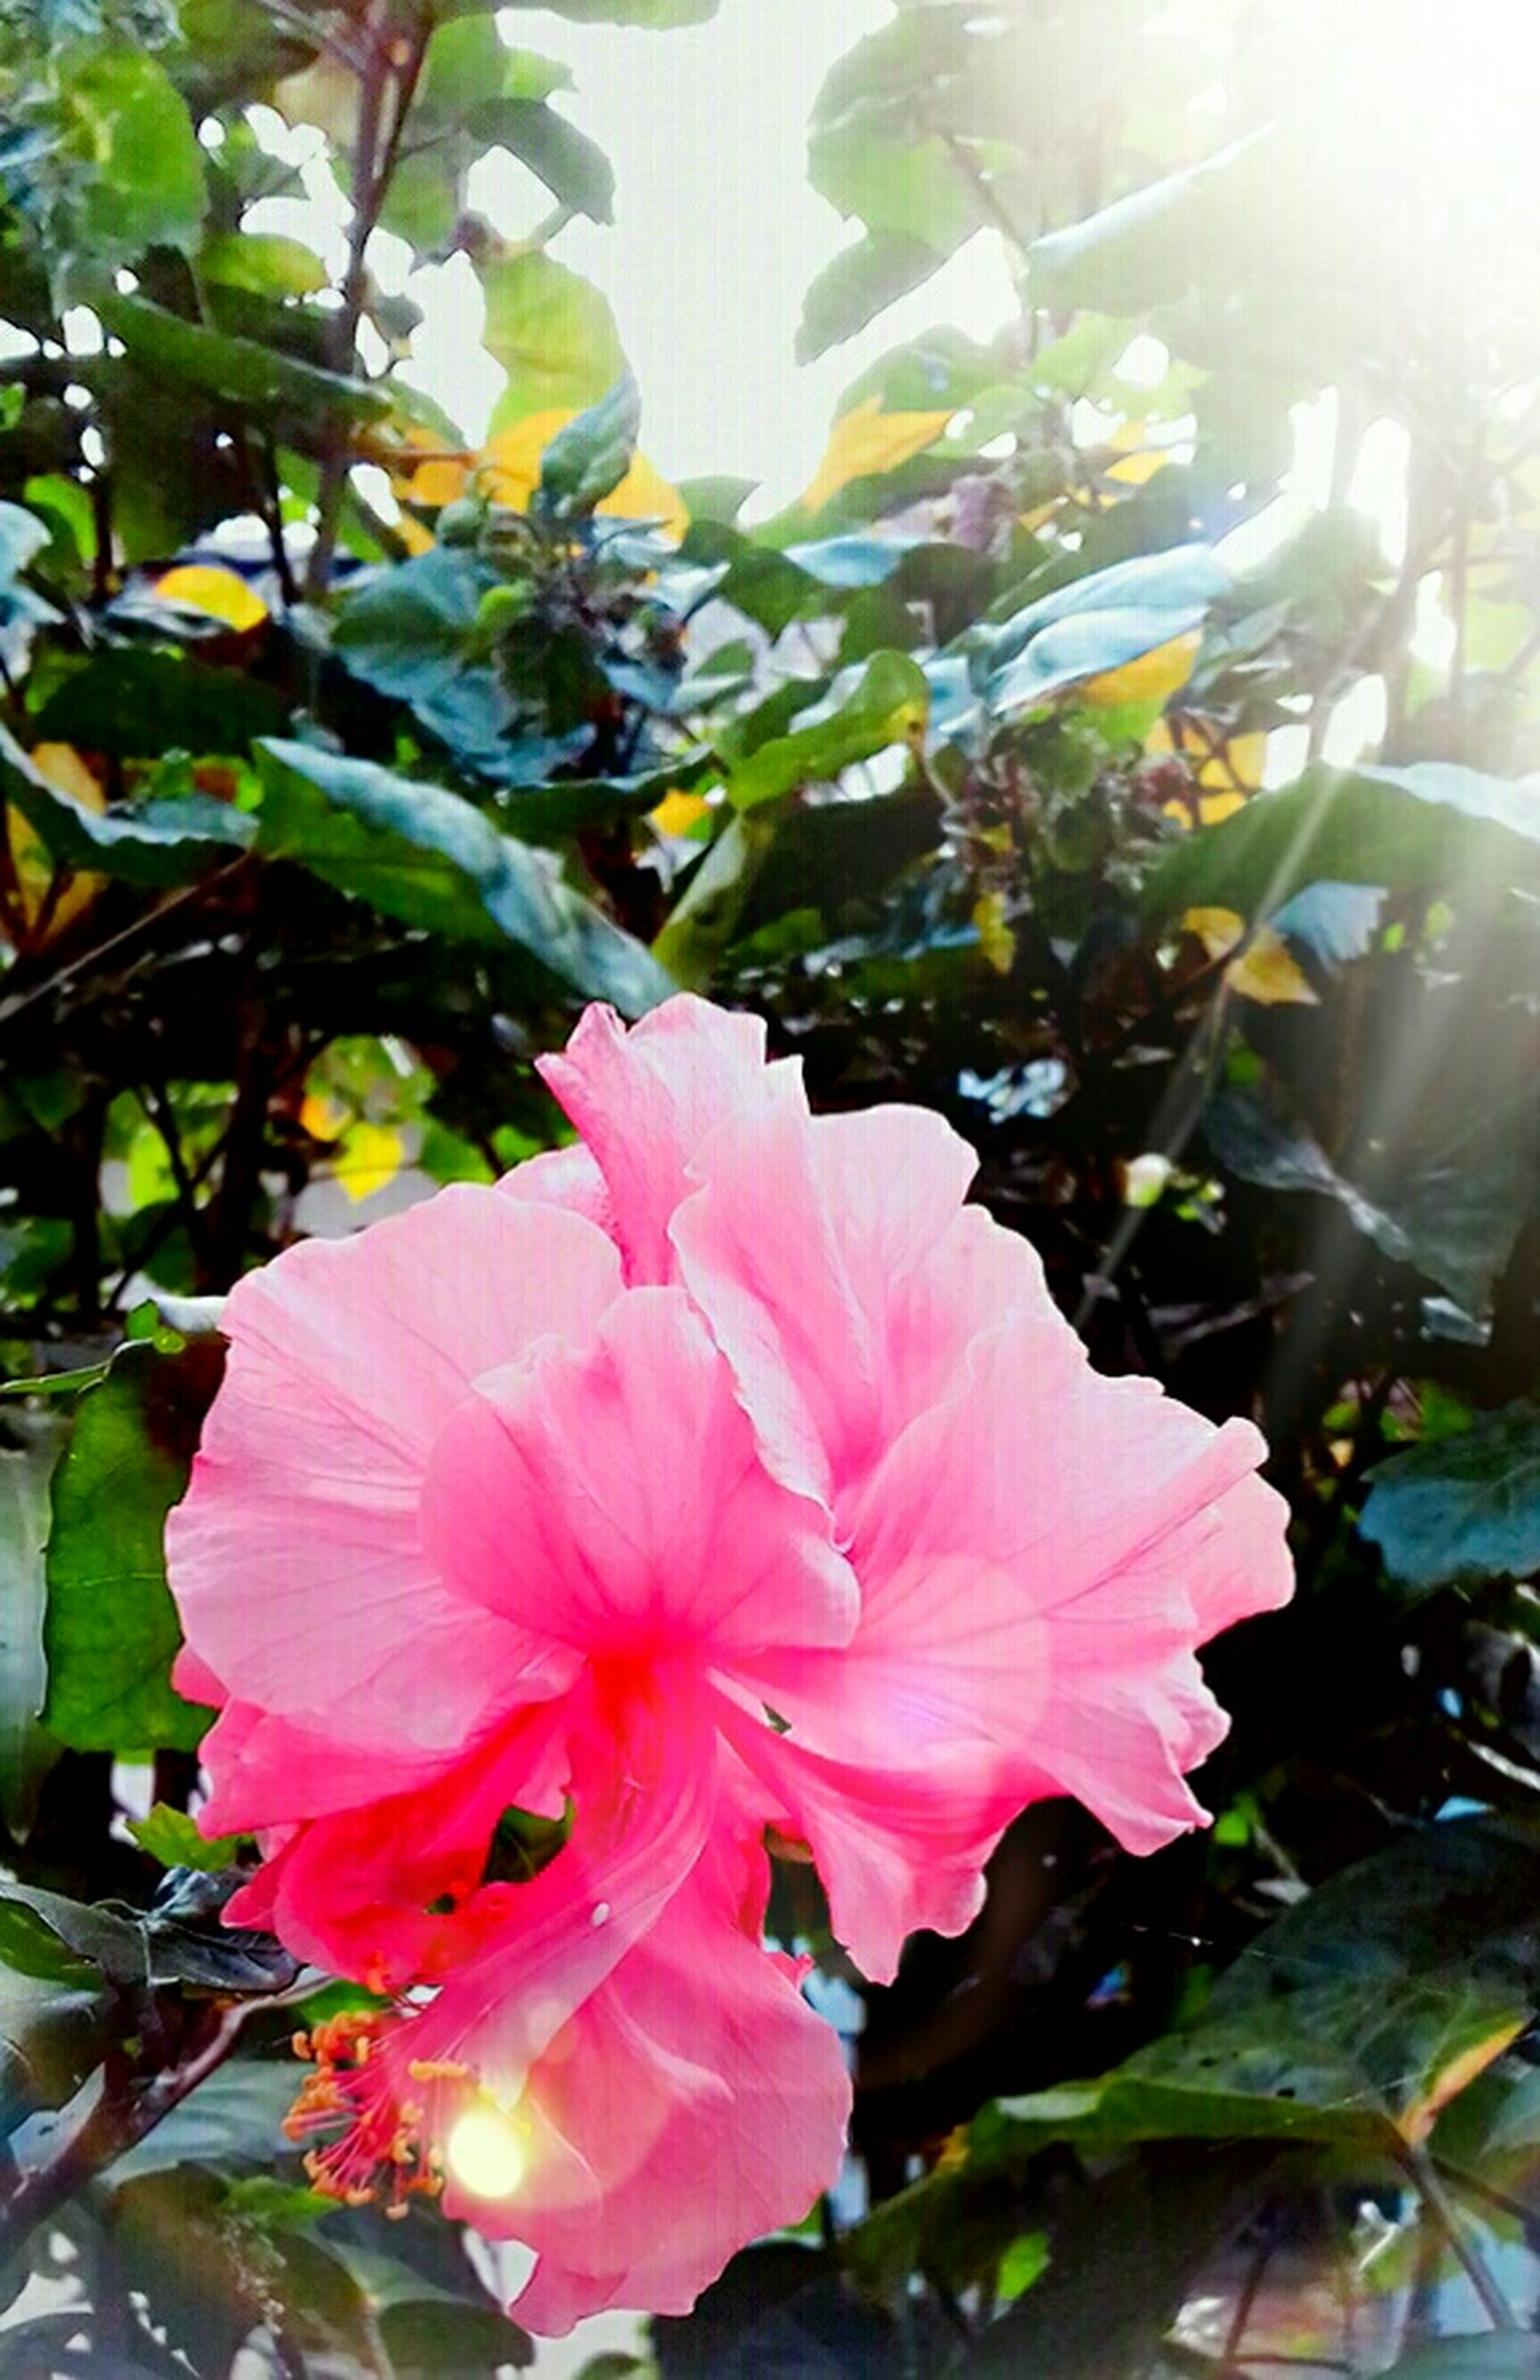 flower, petal, growth, pink color, nature, beauty in nature, flower head, fragility, plant, no people, day, blooming, outdoors, sunlight, leaf, freshness, close-up, hibiscus, periwinkle